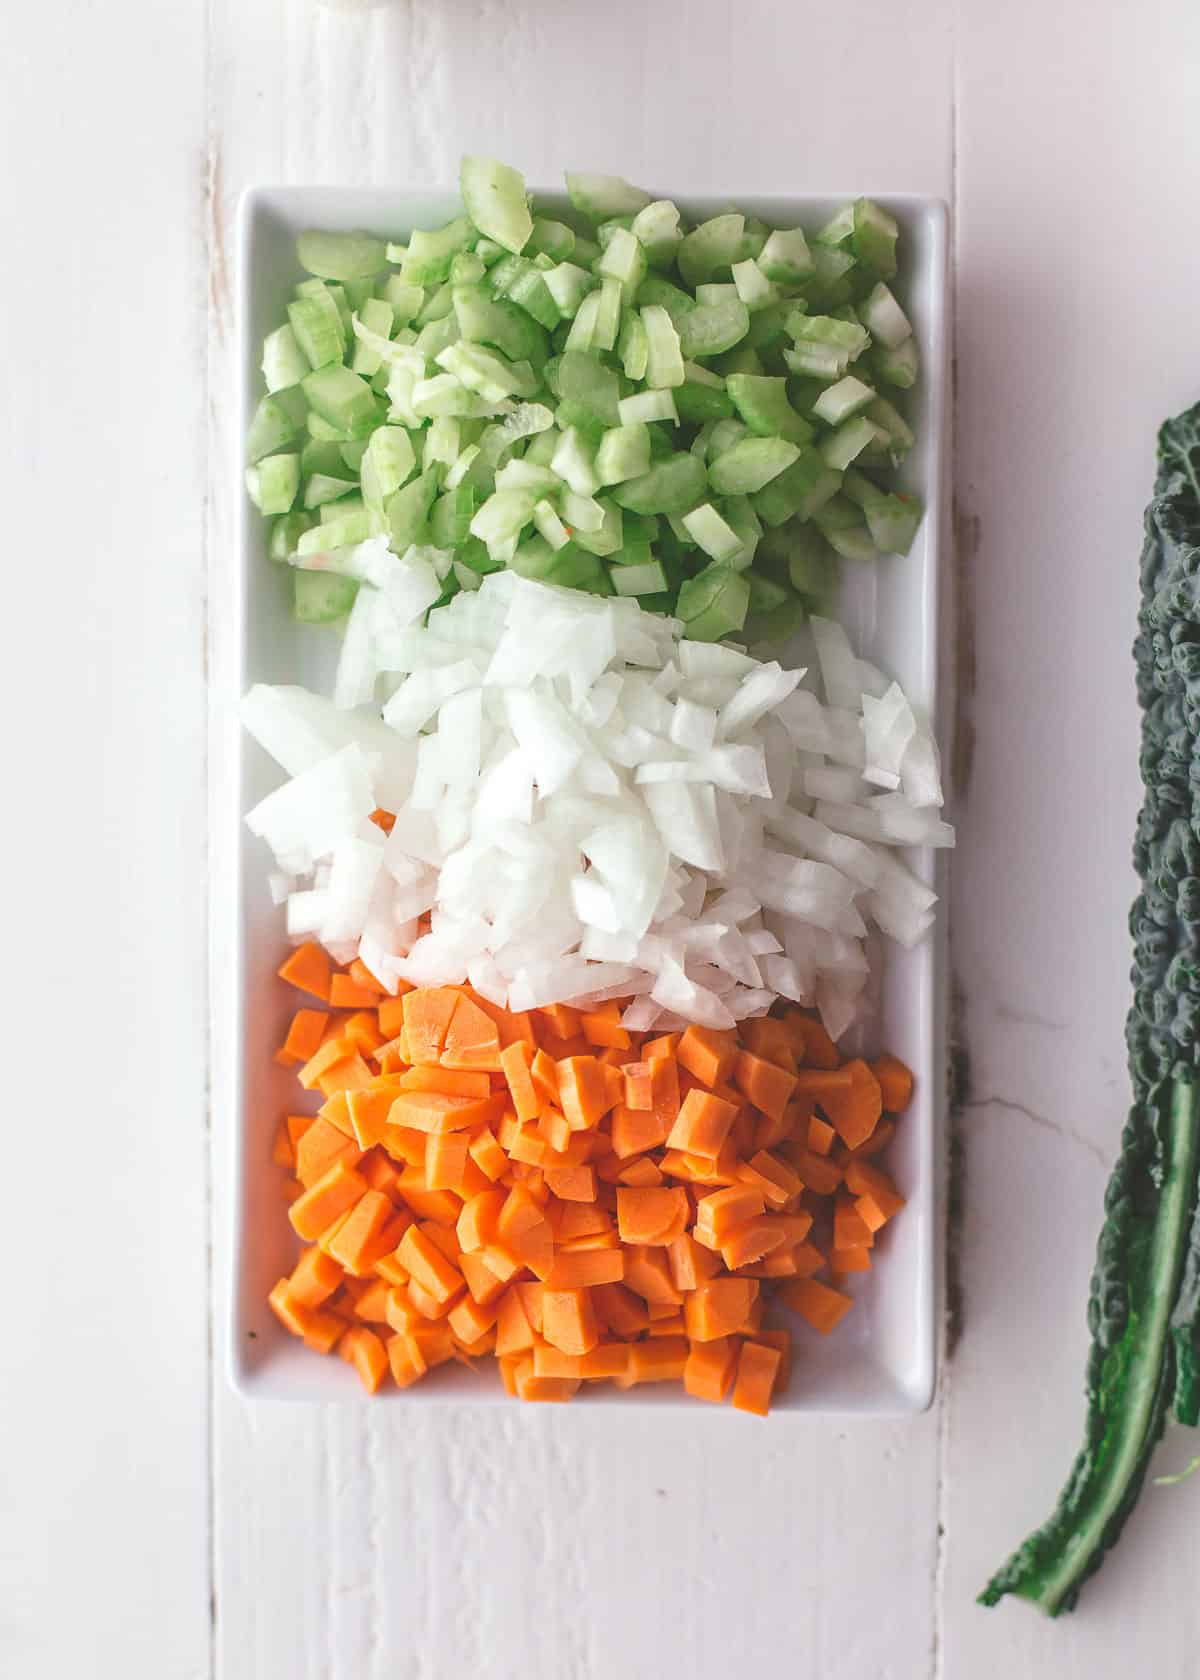 onion, celery and carrots, diced